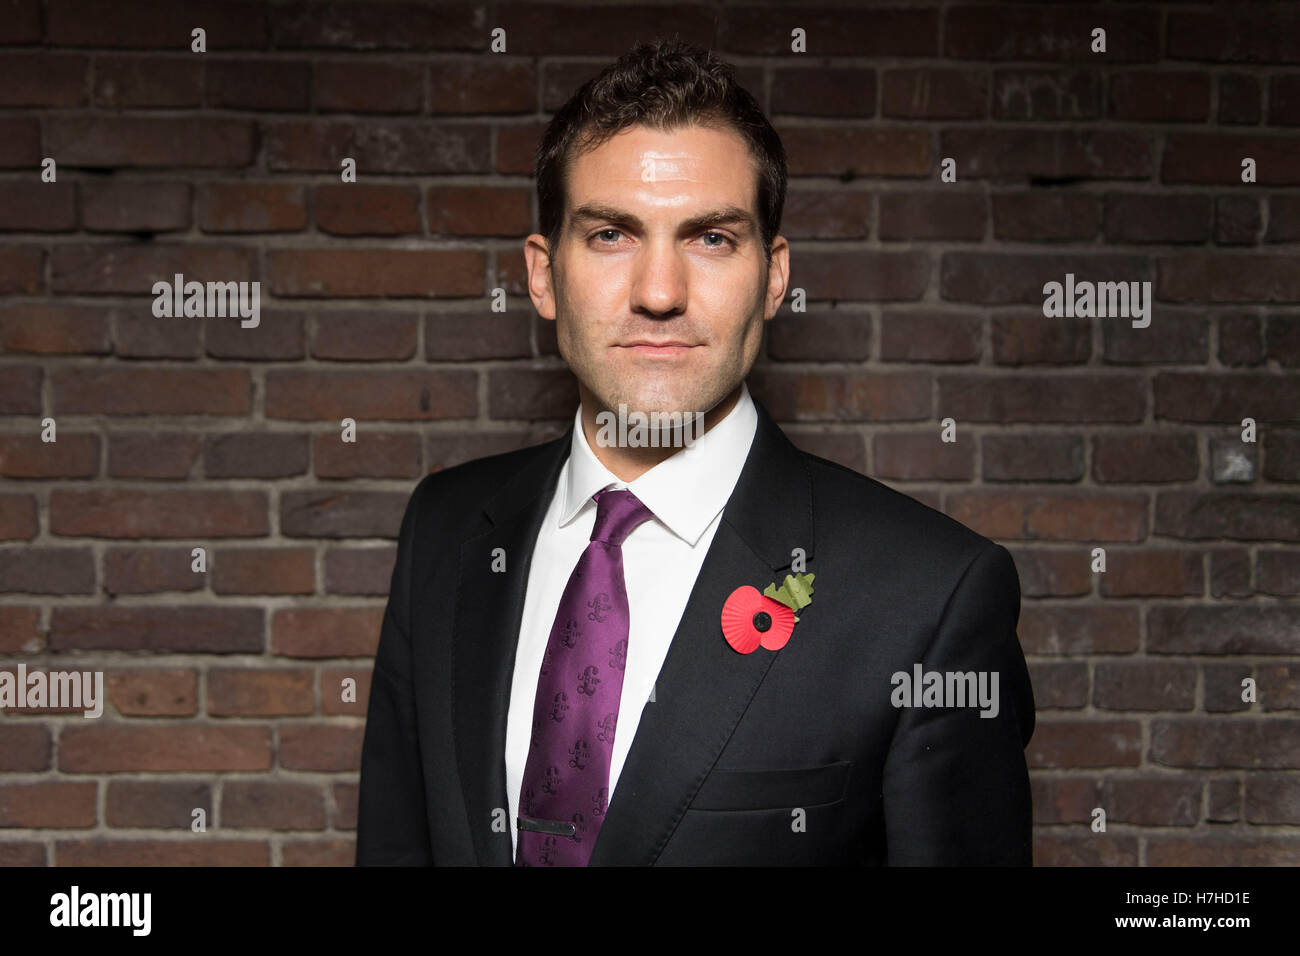 Peter Whittle AM UKIP Member of the London Assembly. - Stock Image